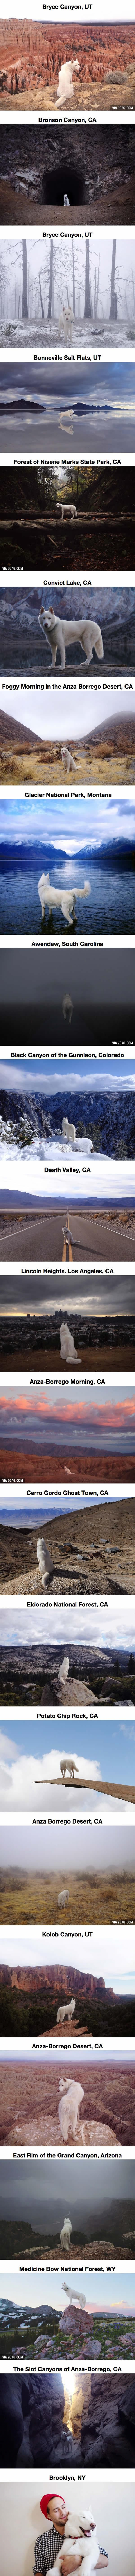 Wild Adventures Of A Man And His Dog In Majestic Nature Photos - This is SO cute!!!